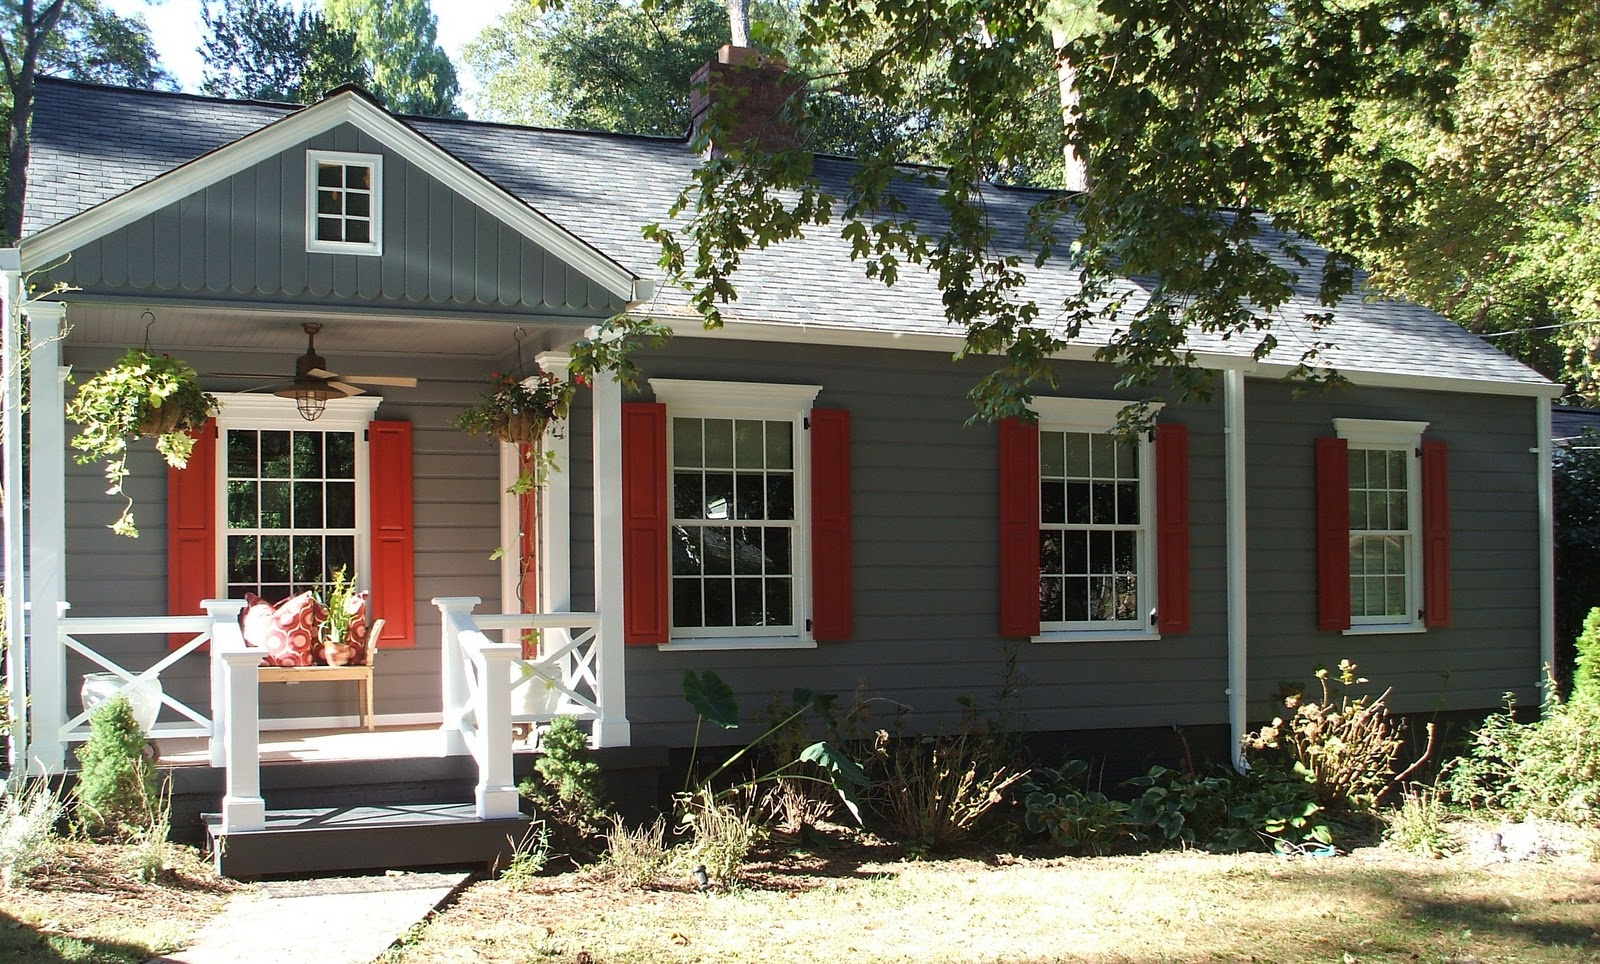 Duchess Fare: Our House Gets A Fresh Coat Of Paint